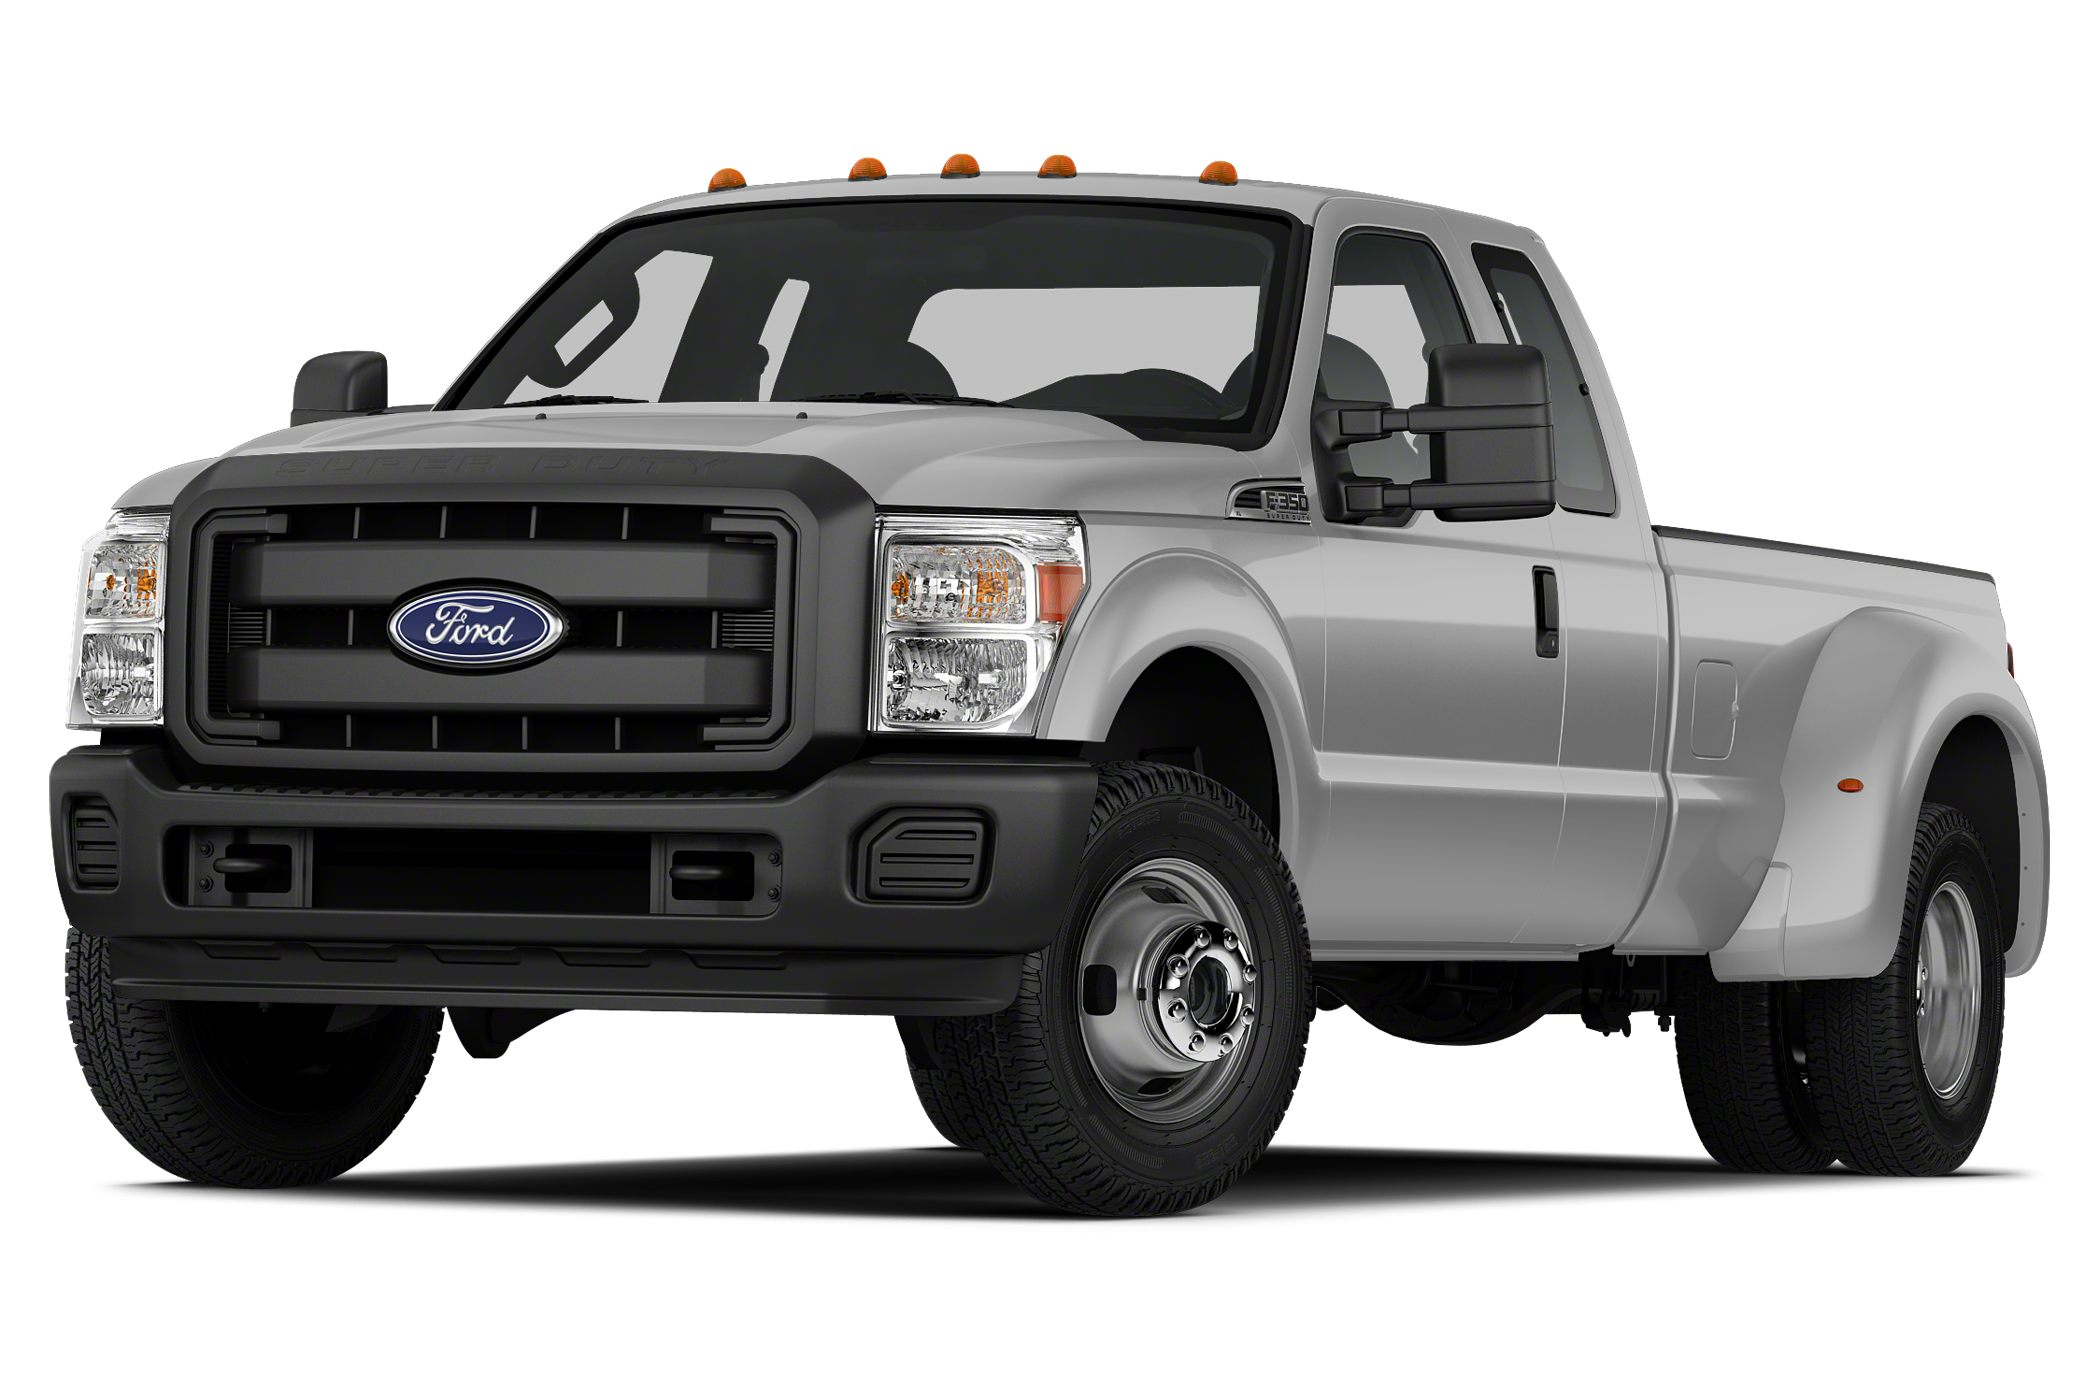 2013 Ford F350 Lariat Crew Cab Pickup for sale in Hermiston for $55,000 with 21,961 miles